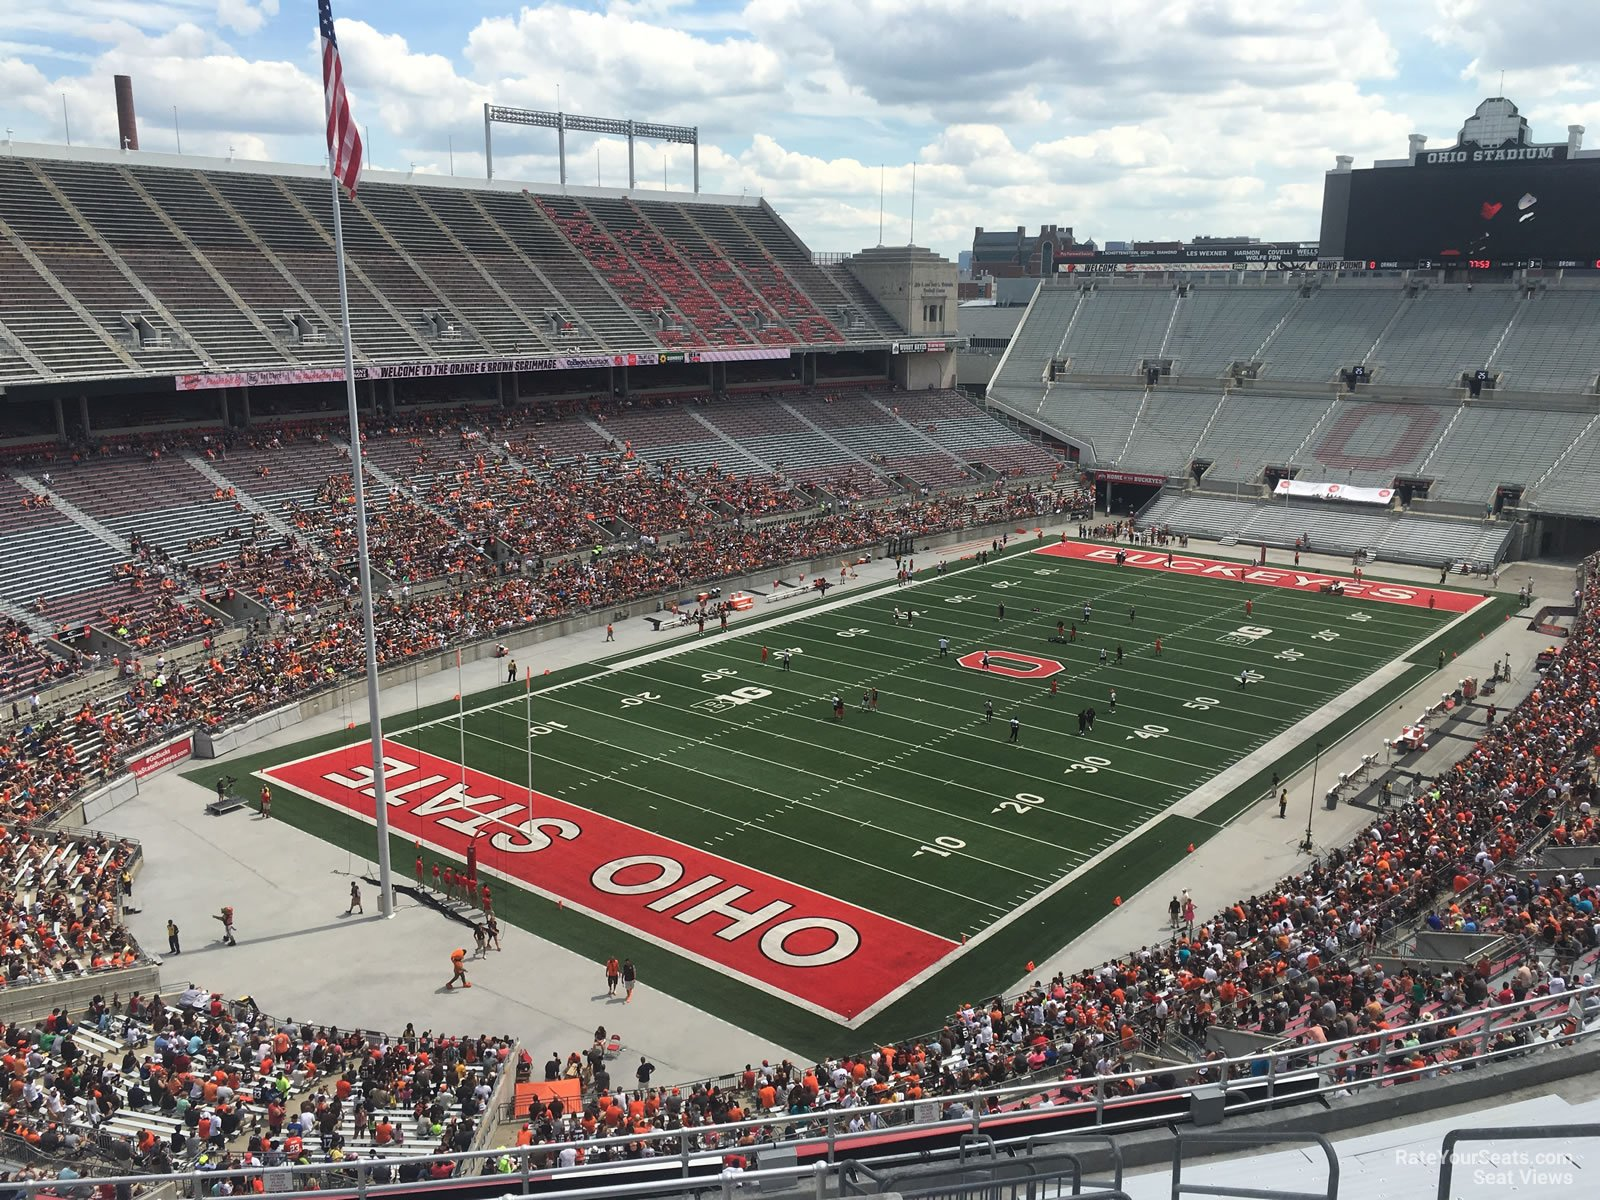 ohio stadium section 7c rateyourseats com